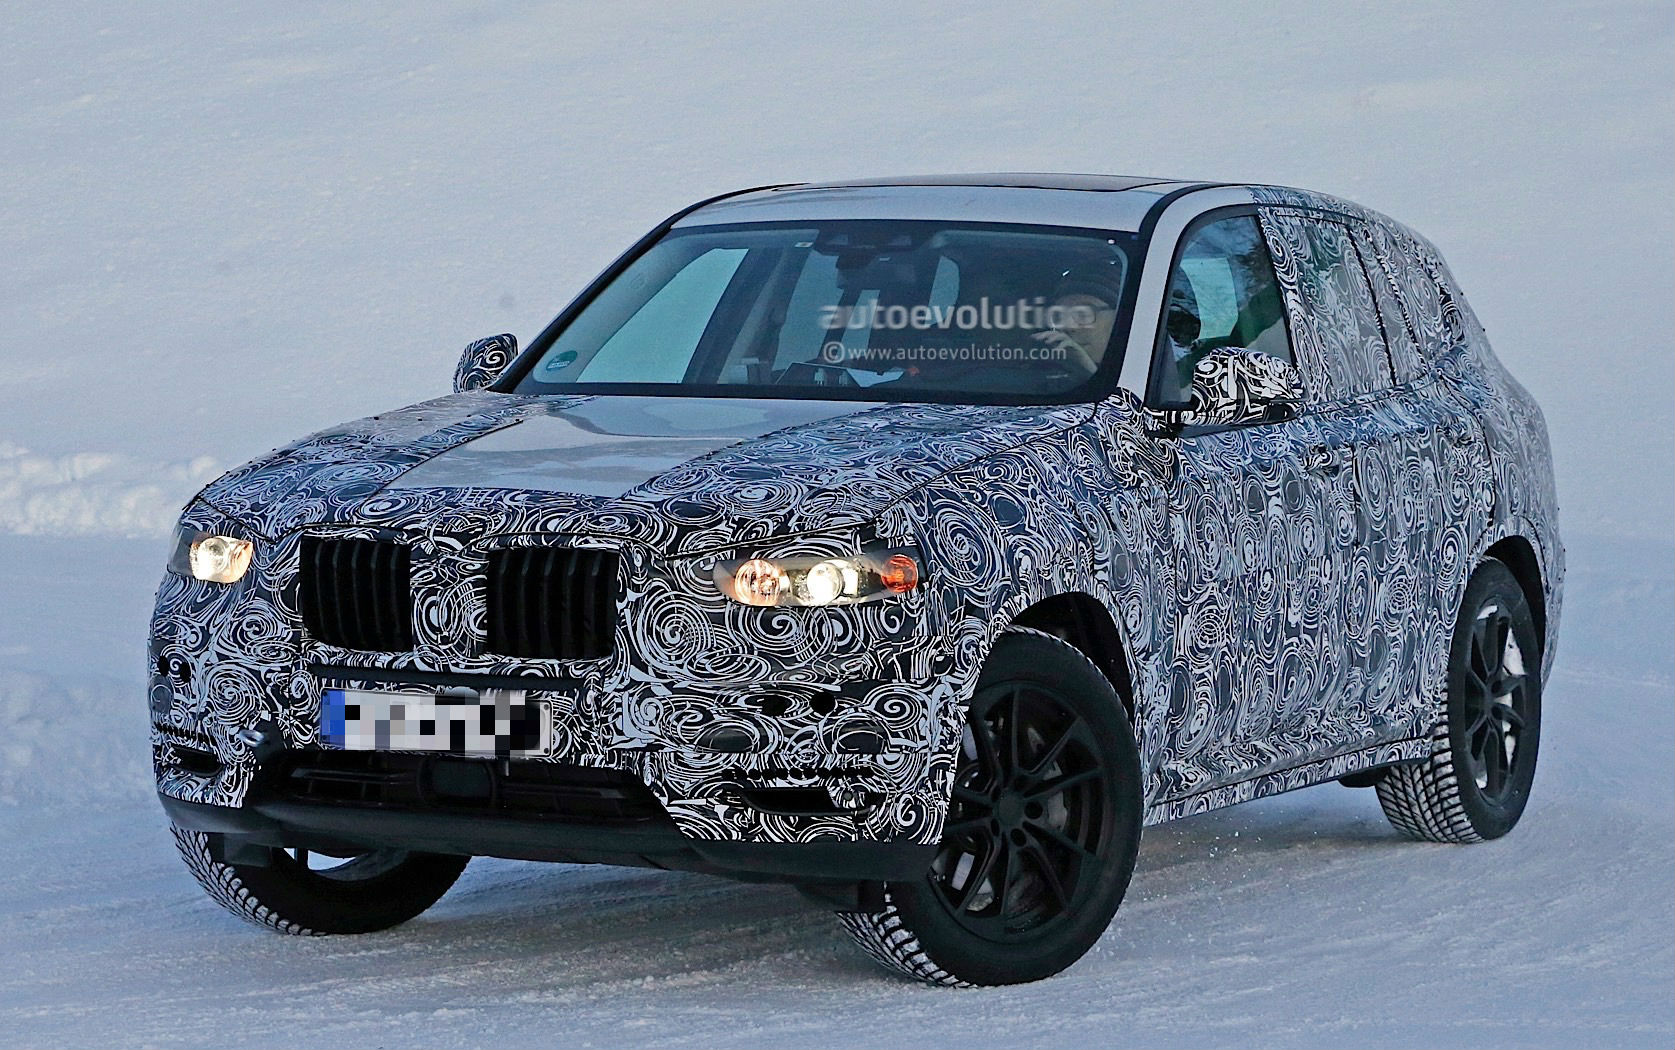 bmw-x3-spy​-shots-rev​eal-a-bigg​er-body-fo​r-the-germ​an-suv-pho​to-gallery​_4